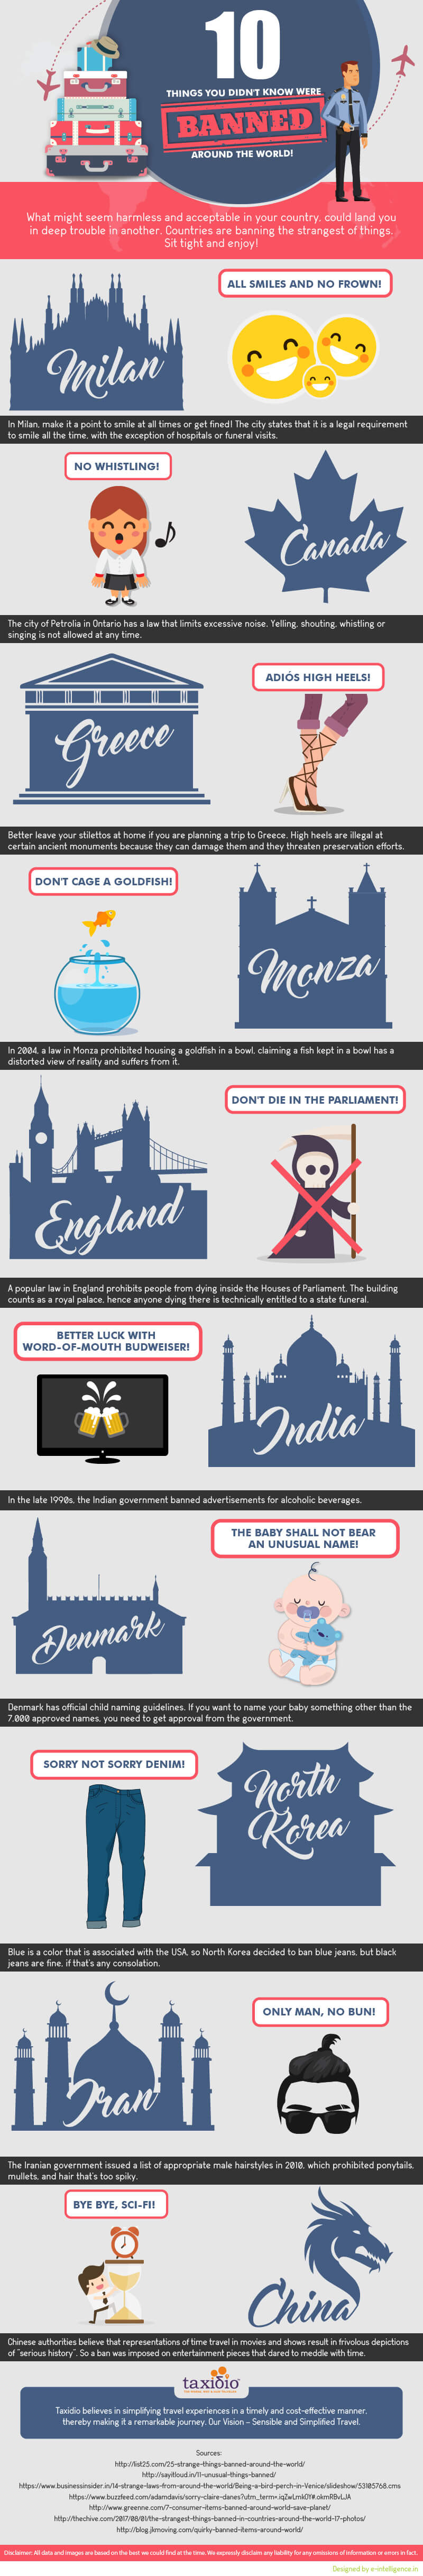 10-Things-You-Didn2019-Know-Were-Banned-Around-The-World-infographic-plaza